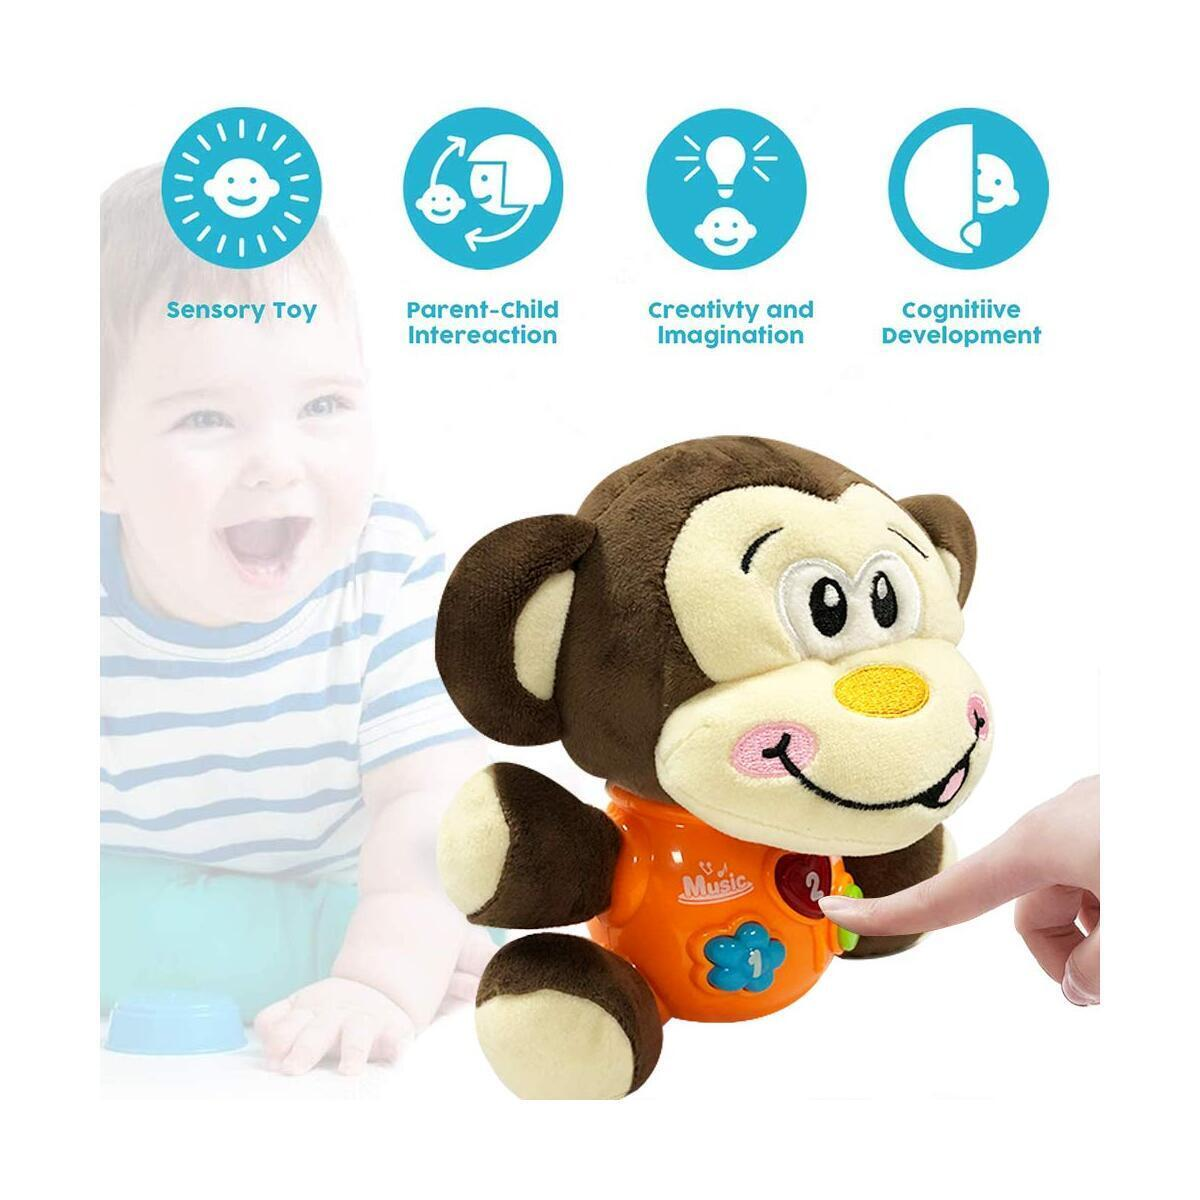 Baby Musical Toys Baby Doll - Newborn Soothers Infant Toys 0-6 Months Baby Gifts Soothing Dolls Plush Soother Musical Dolls Pacifiers Soothing Partners Plush Appease Monkey